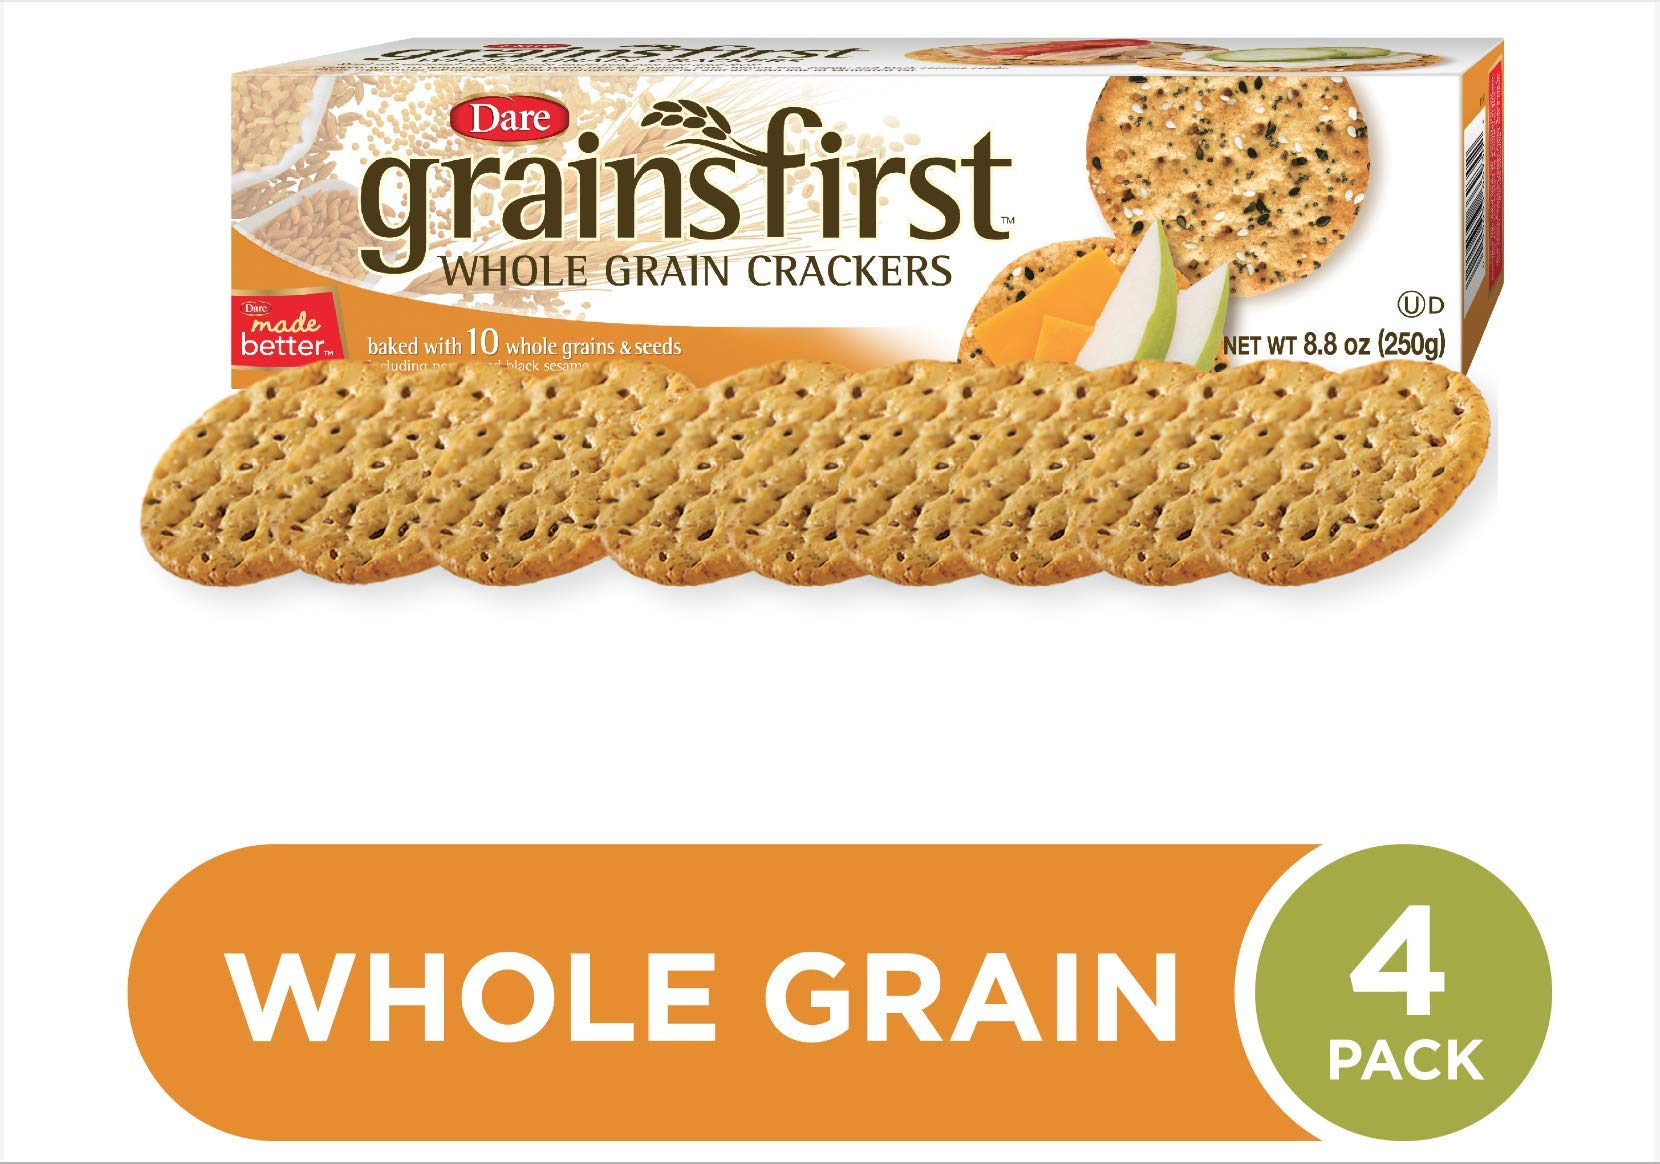 Dare Grainsfirst Whole Grain Crackers, 8.4 oz (Pack of 4) - 100% Natural - Baked with 10 Whole Grains and Seeds - Robust Multigrain Taste - 6g of Whole Grains Per Serving - Delicious Plain or Topped